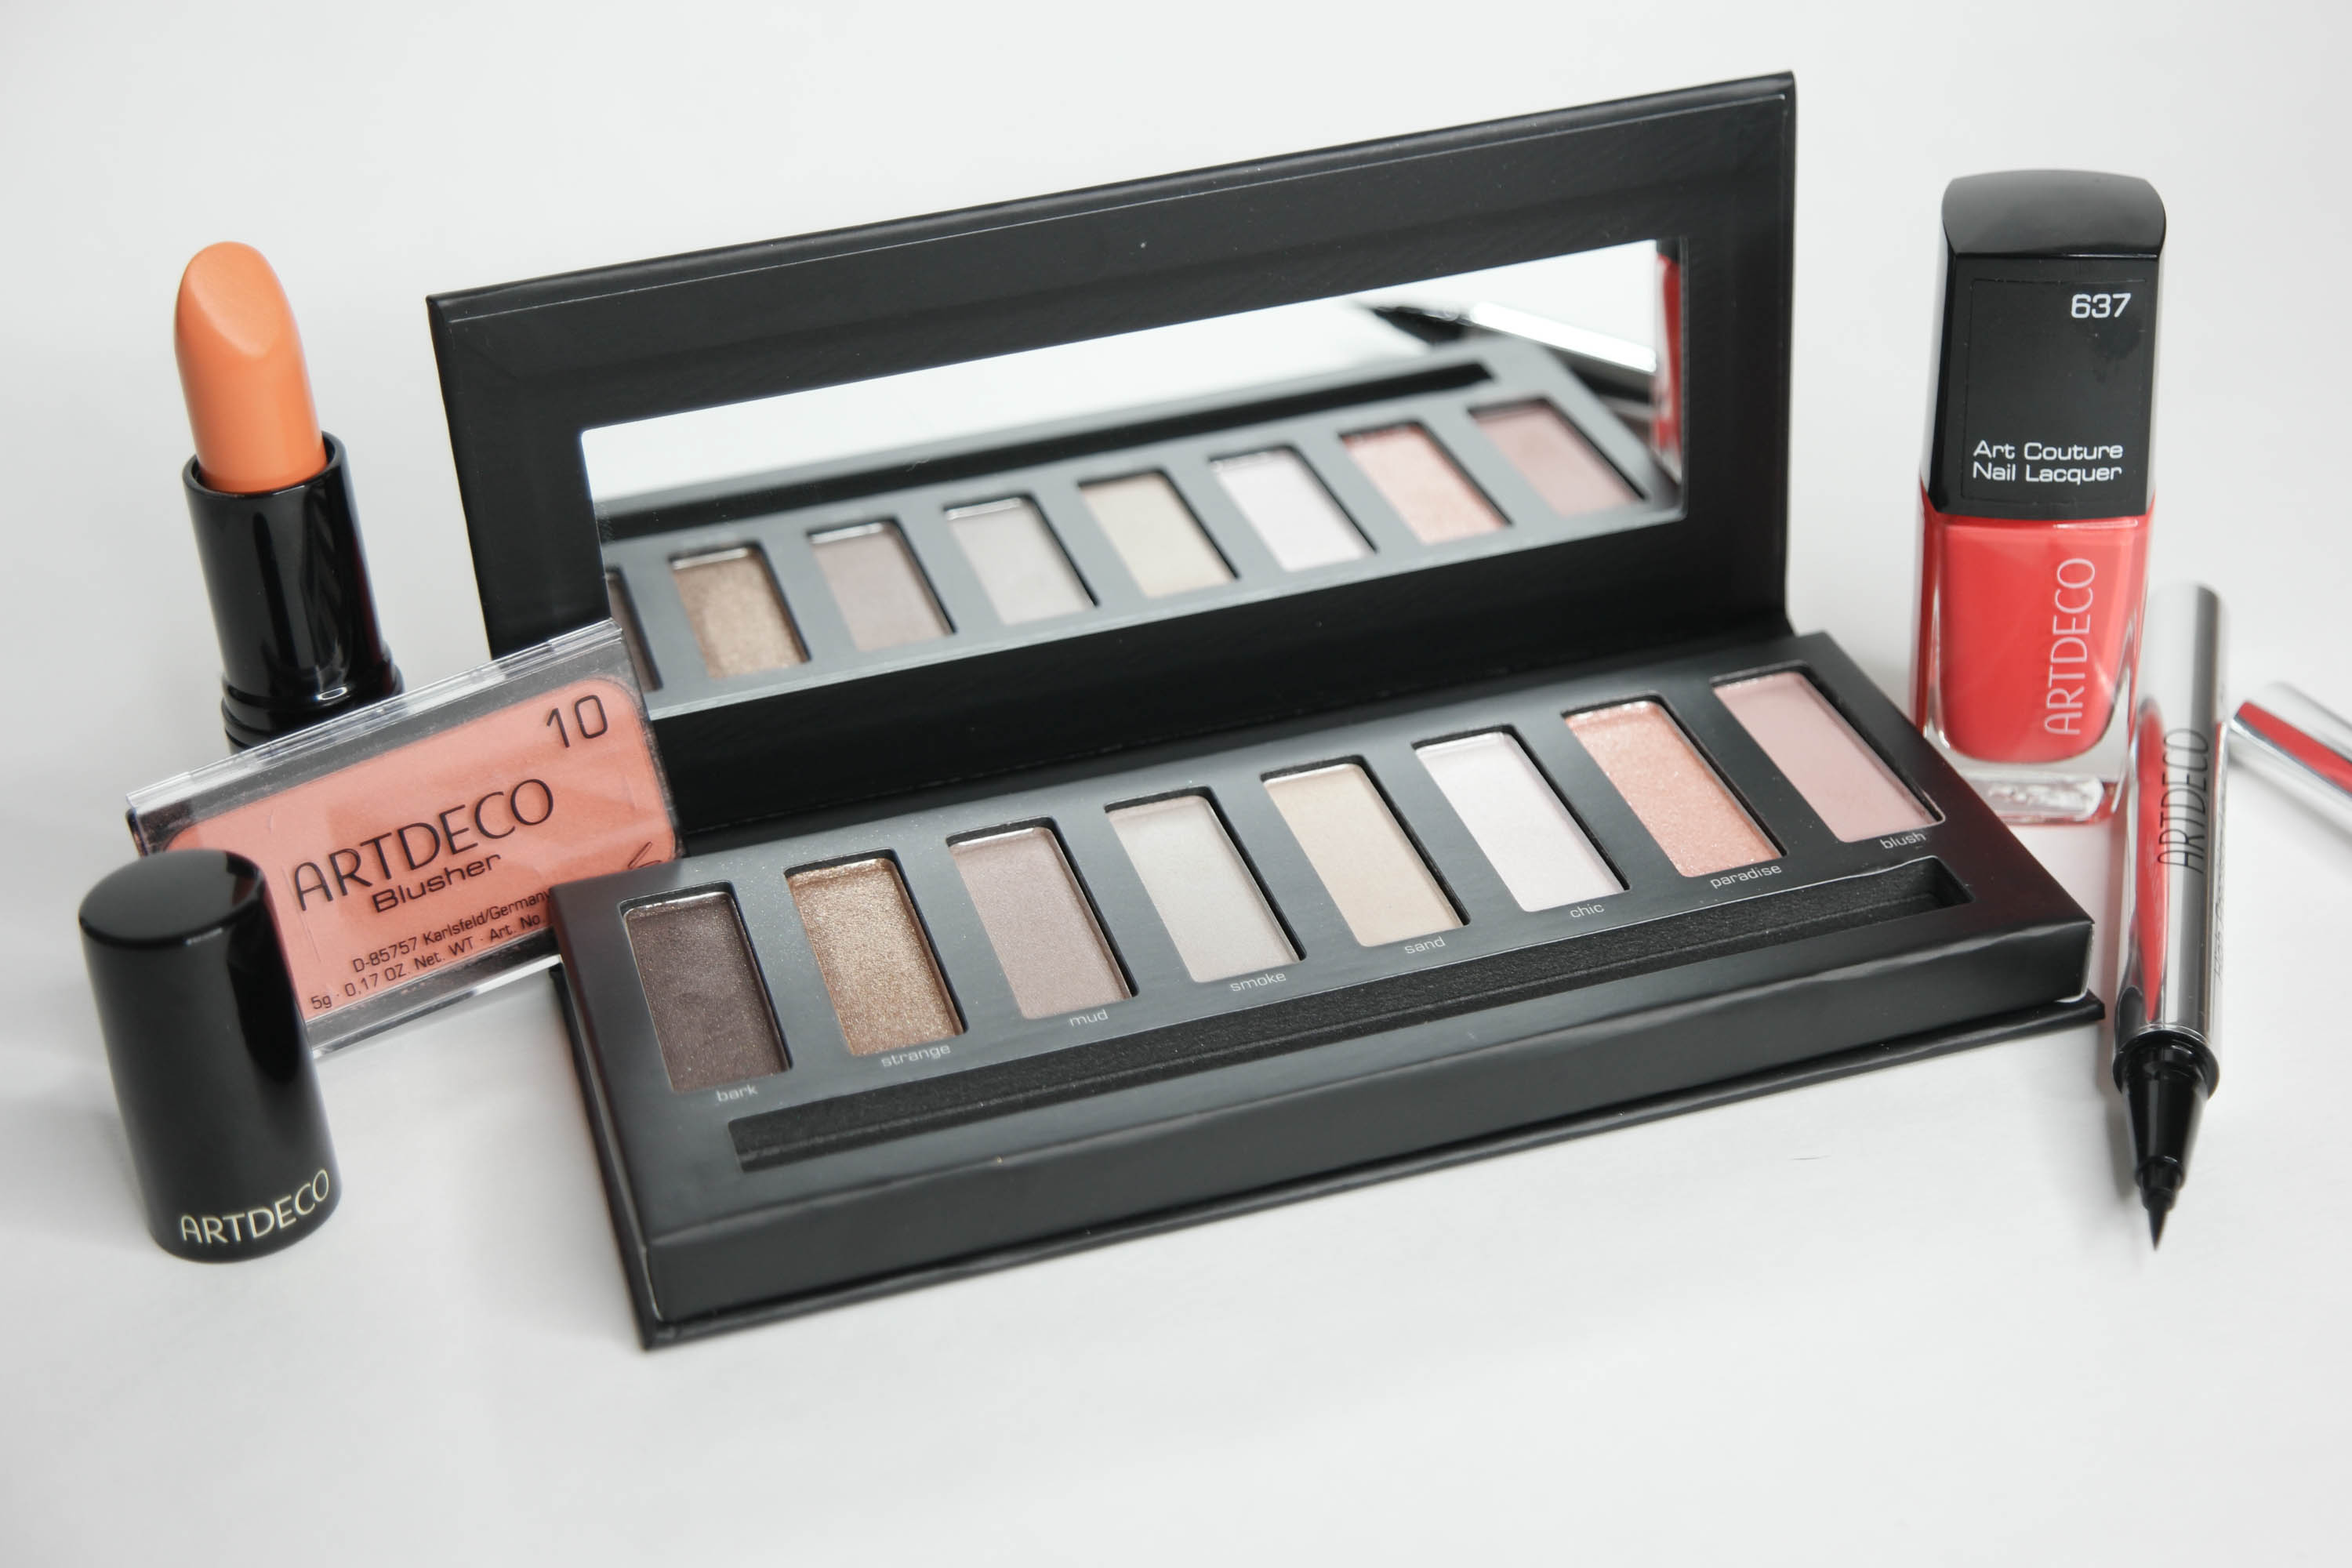 ArtDeco Beauty Finally Delivers to the USA & I Feel Let Down